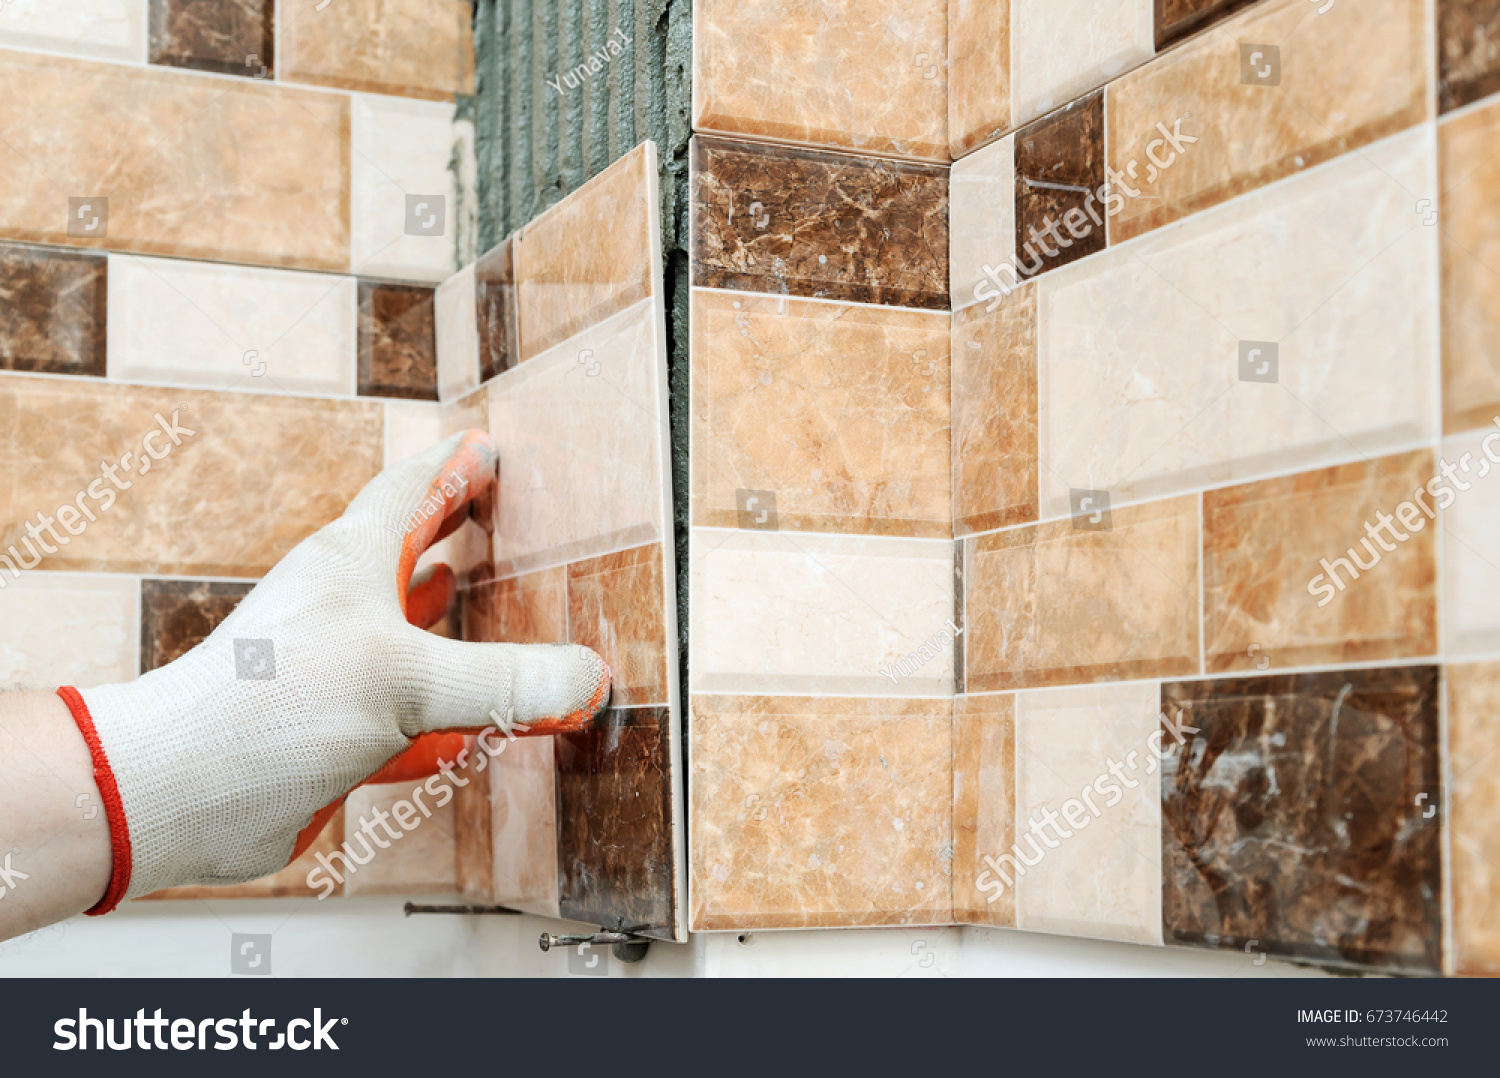 Can ceramic tile be installed over ceramic tile